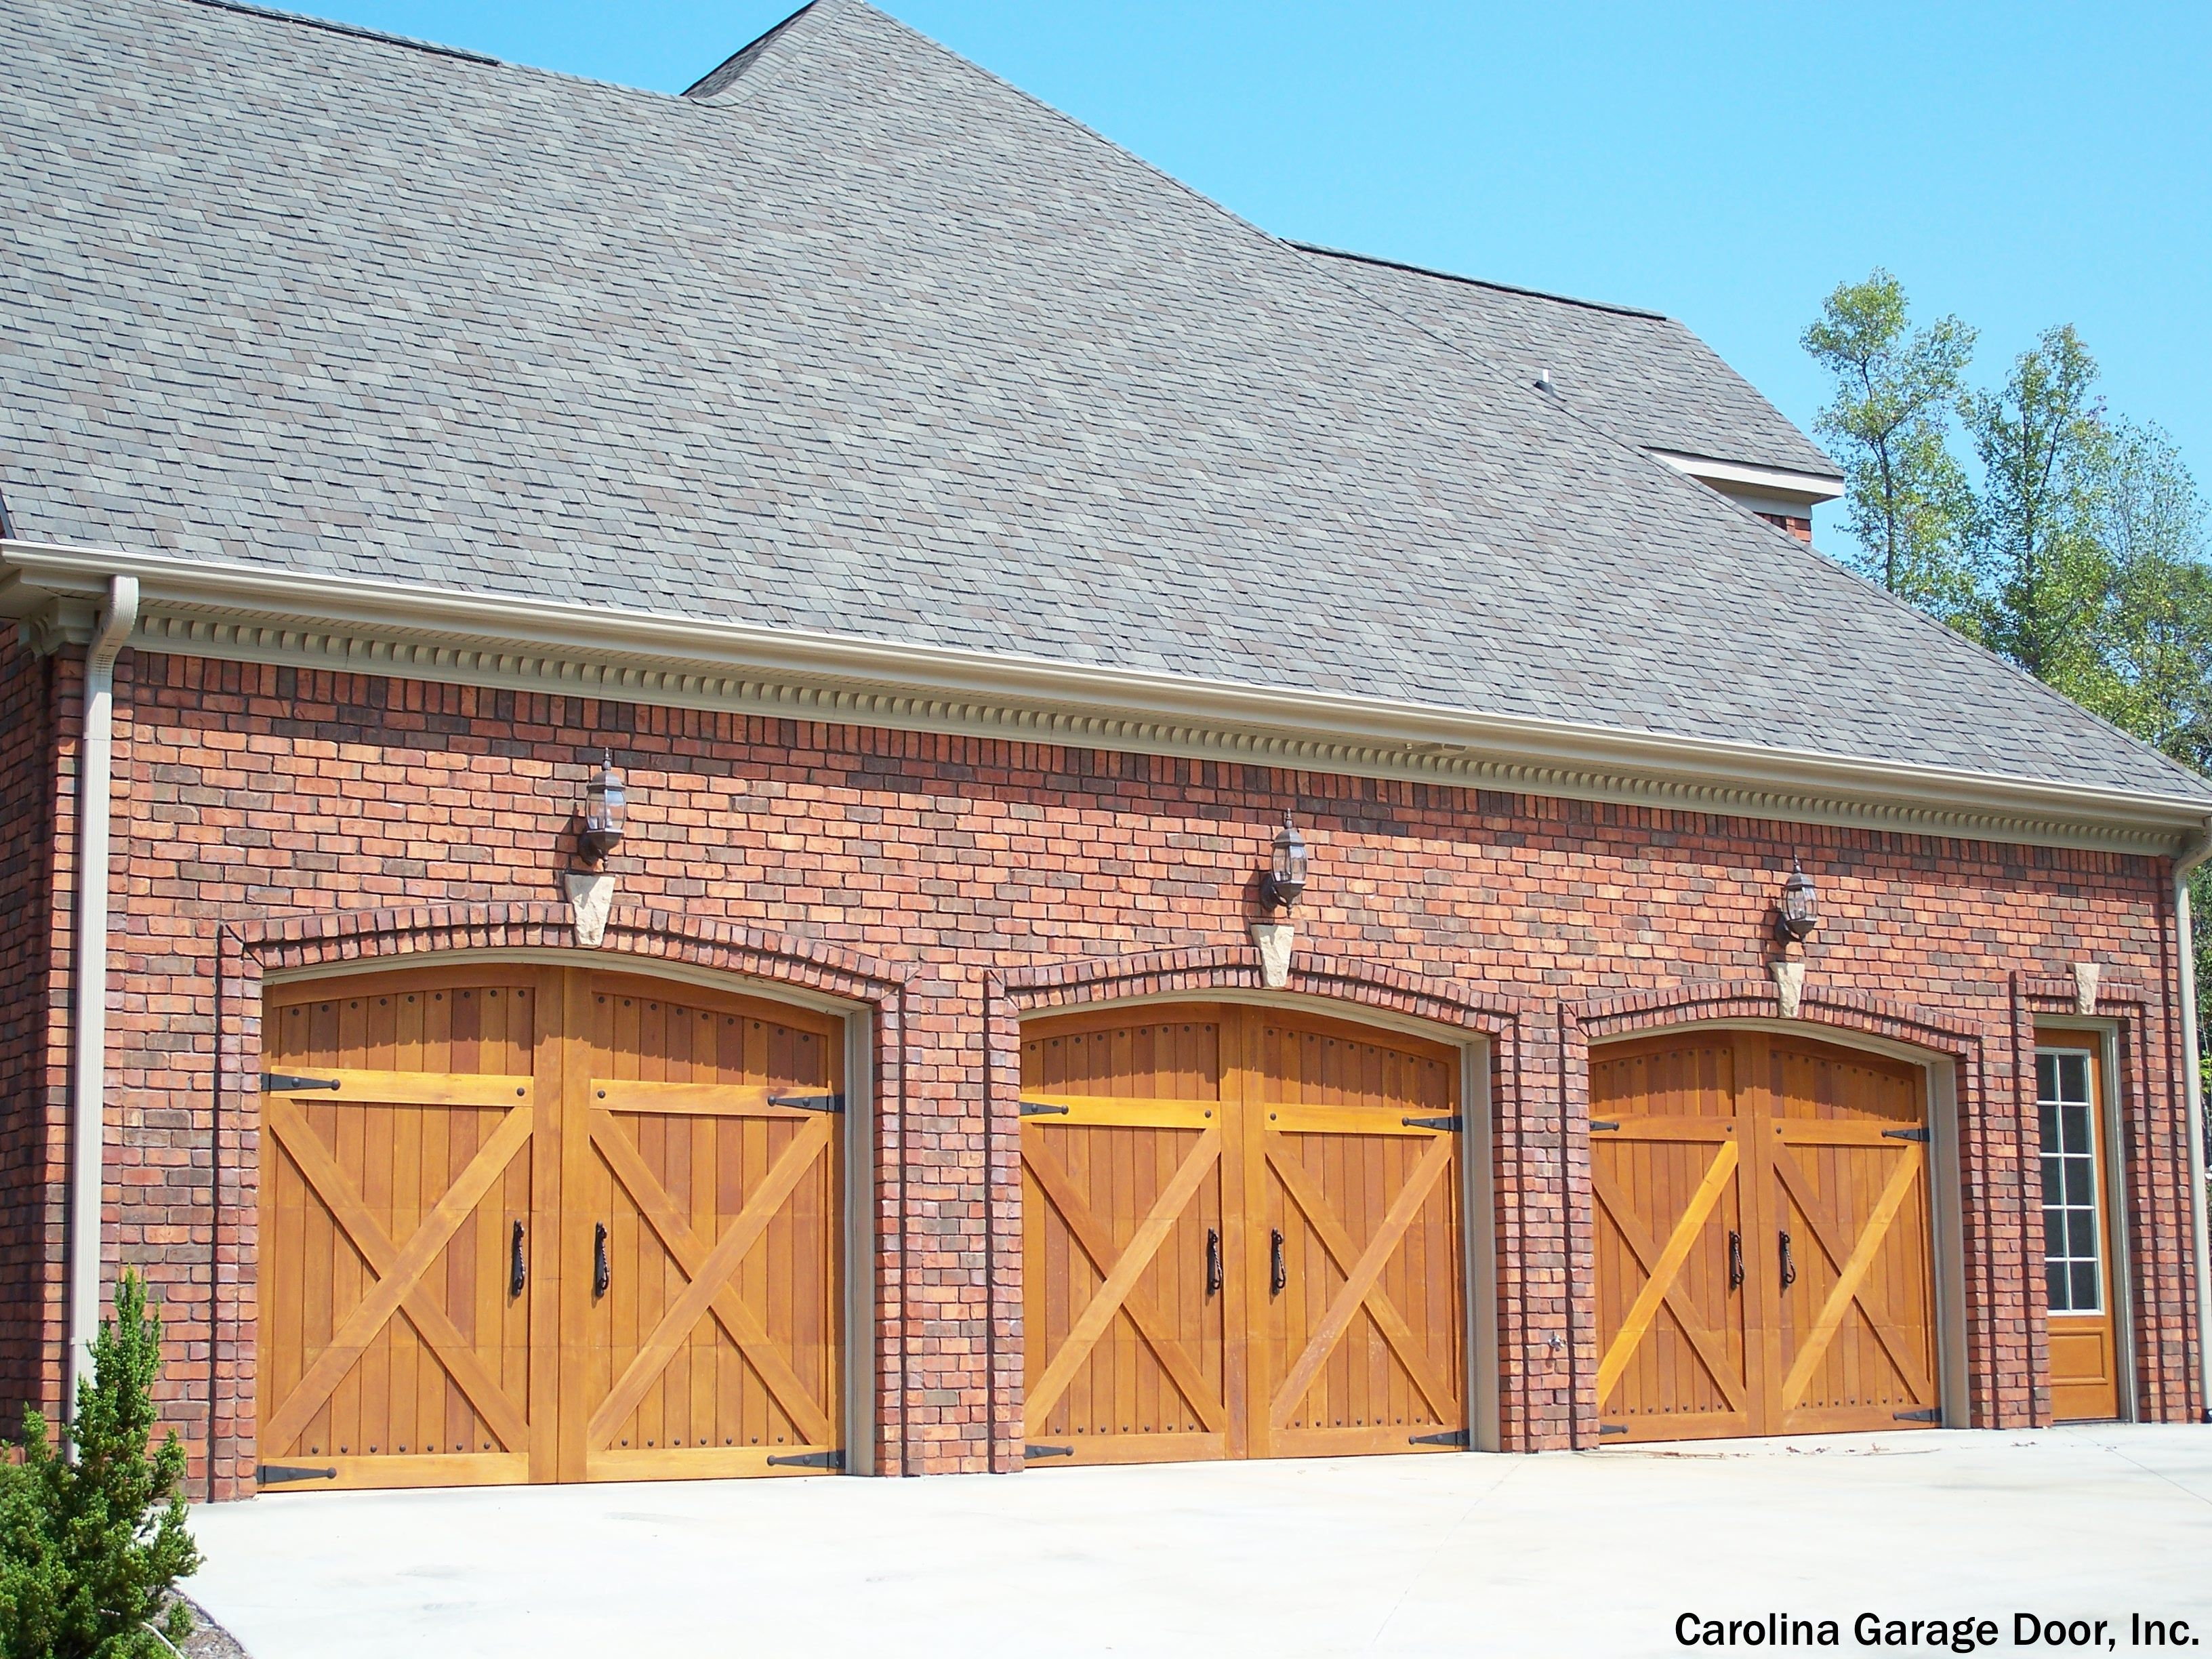 Wood Garage Doors For A Brick House Not Sure The Contrast Works